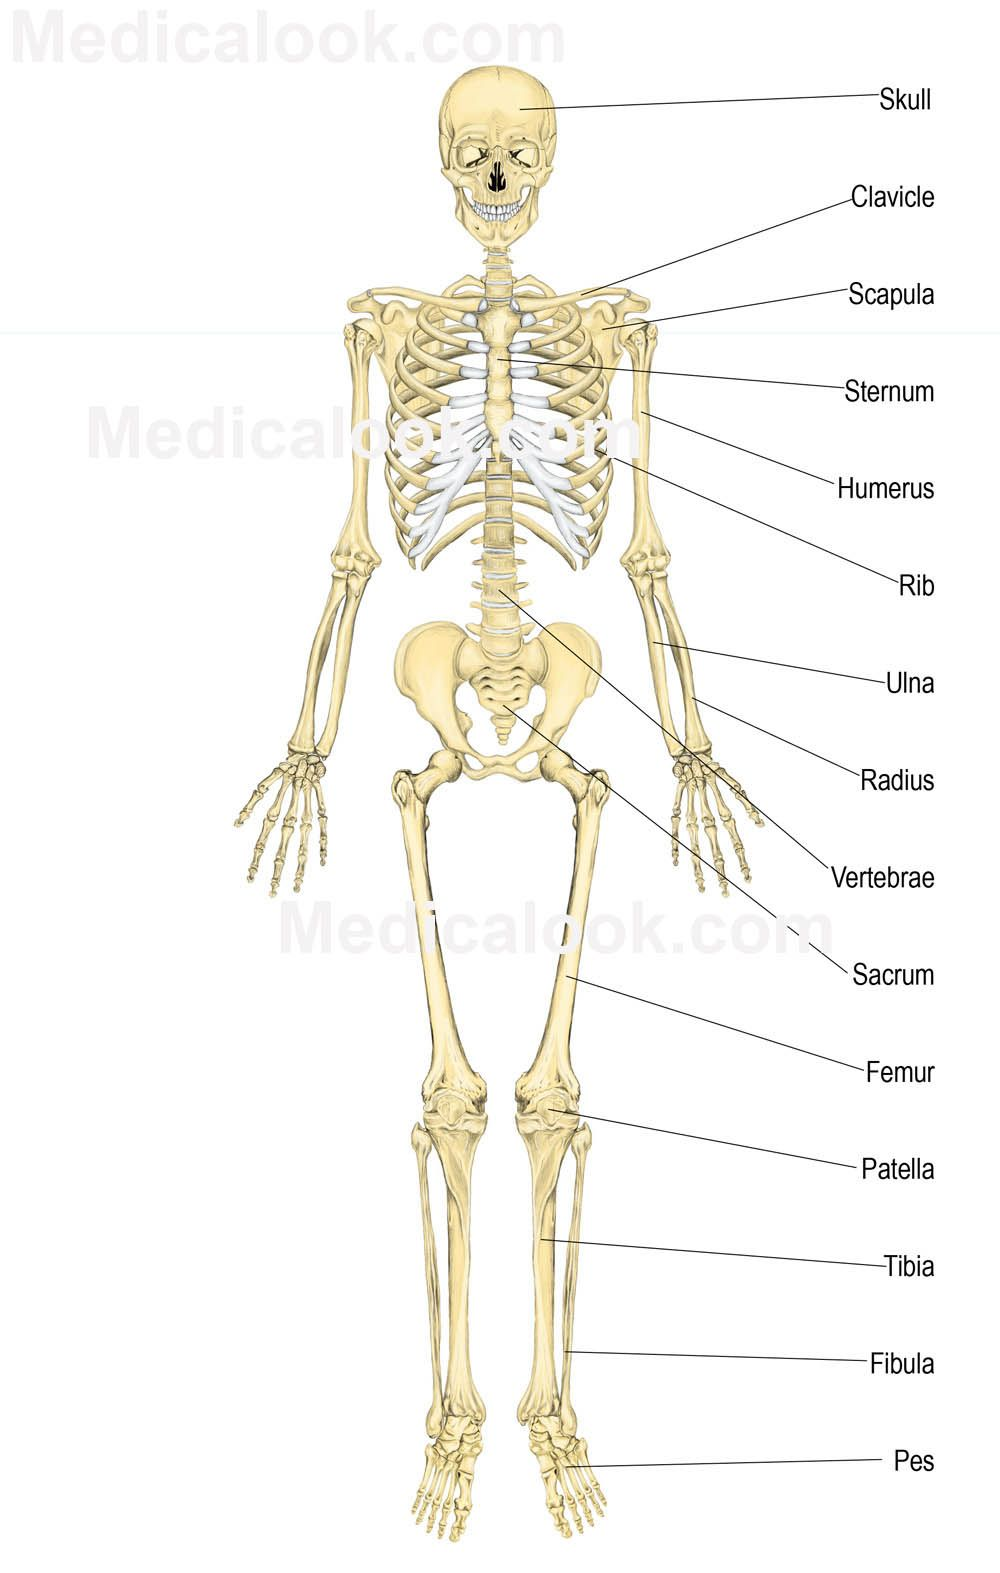 Human Anatomy Charts - Inner Body Anatomy, Muscle Anatomy, and ...